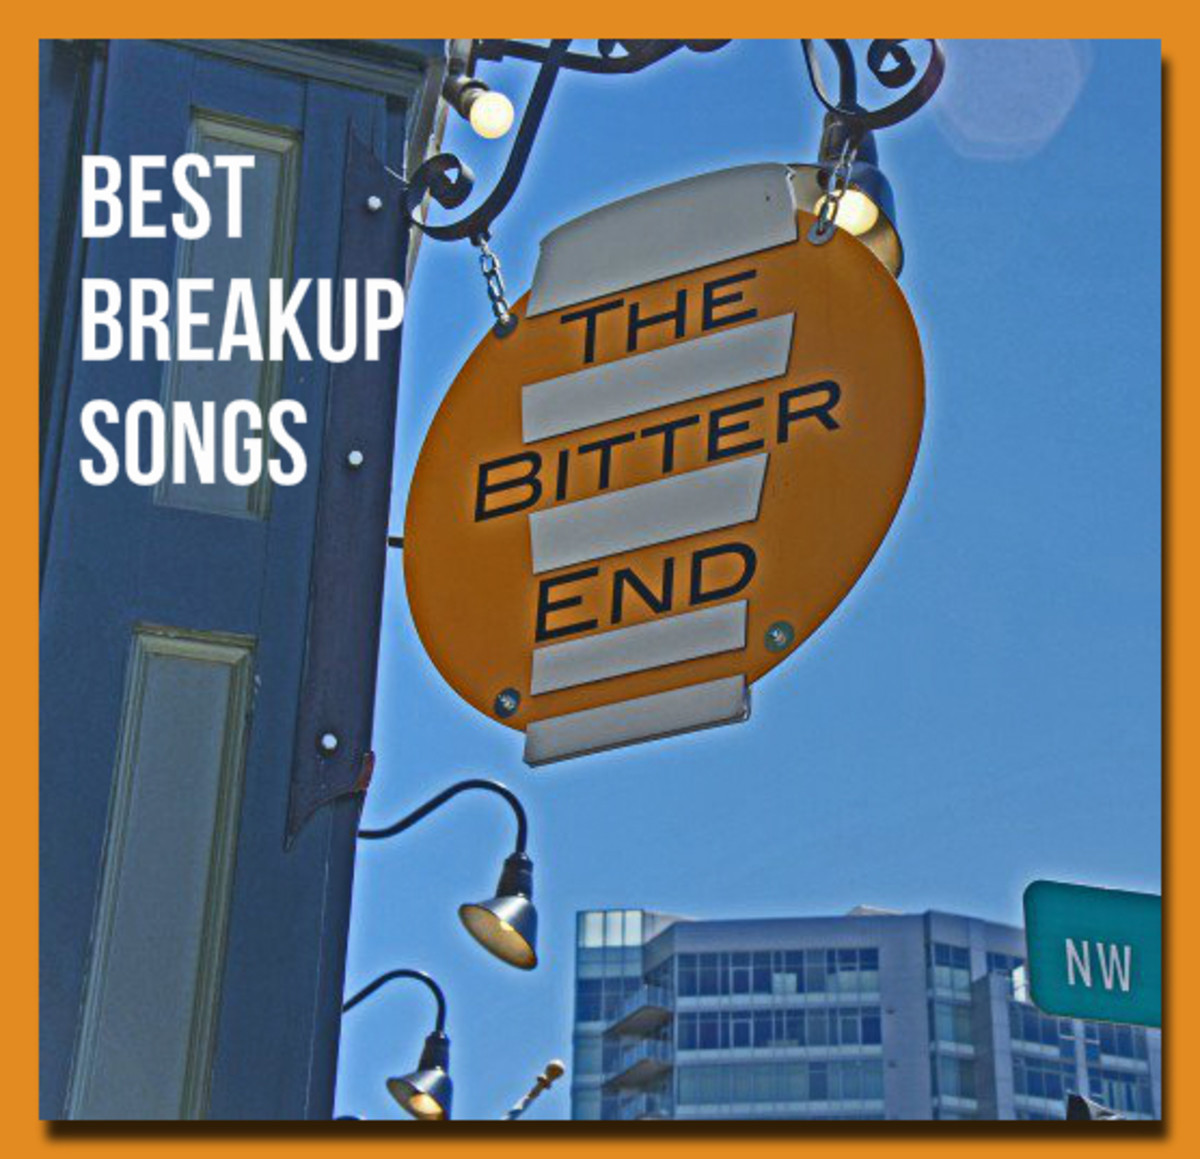 110 Songs About Breakups, Heartbreak, and Divorce